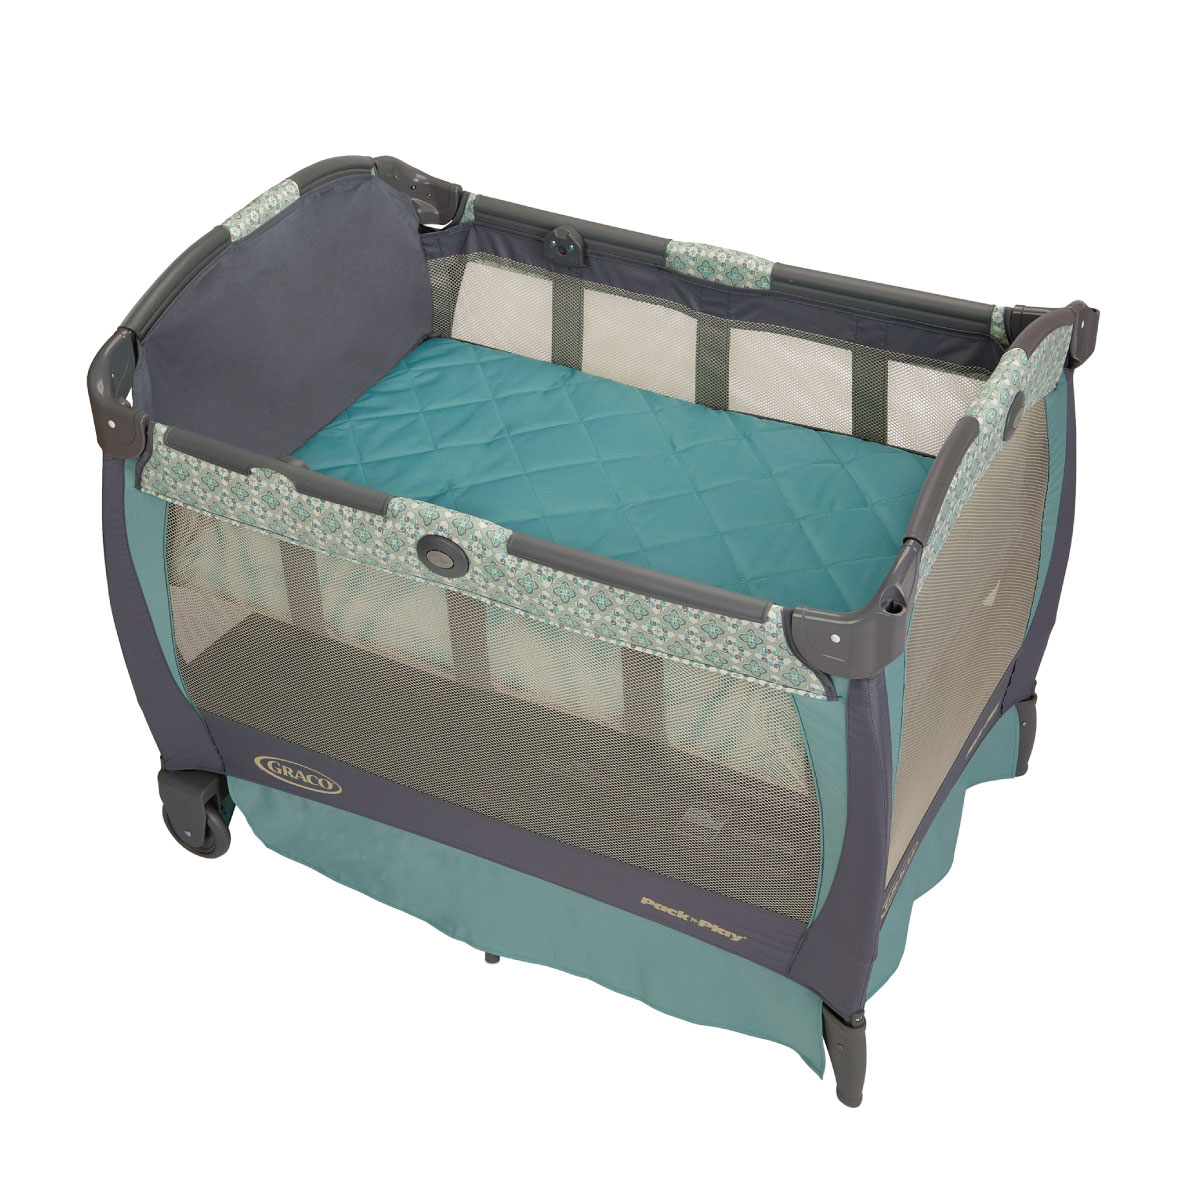 Pack'n_Play_Playard_Premium_4969220003726_03